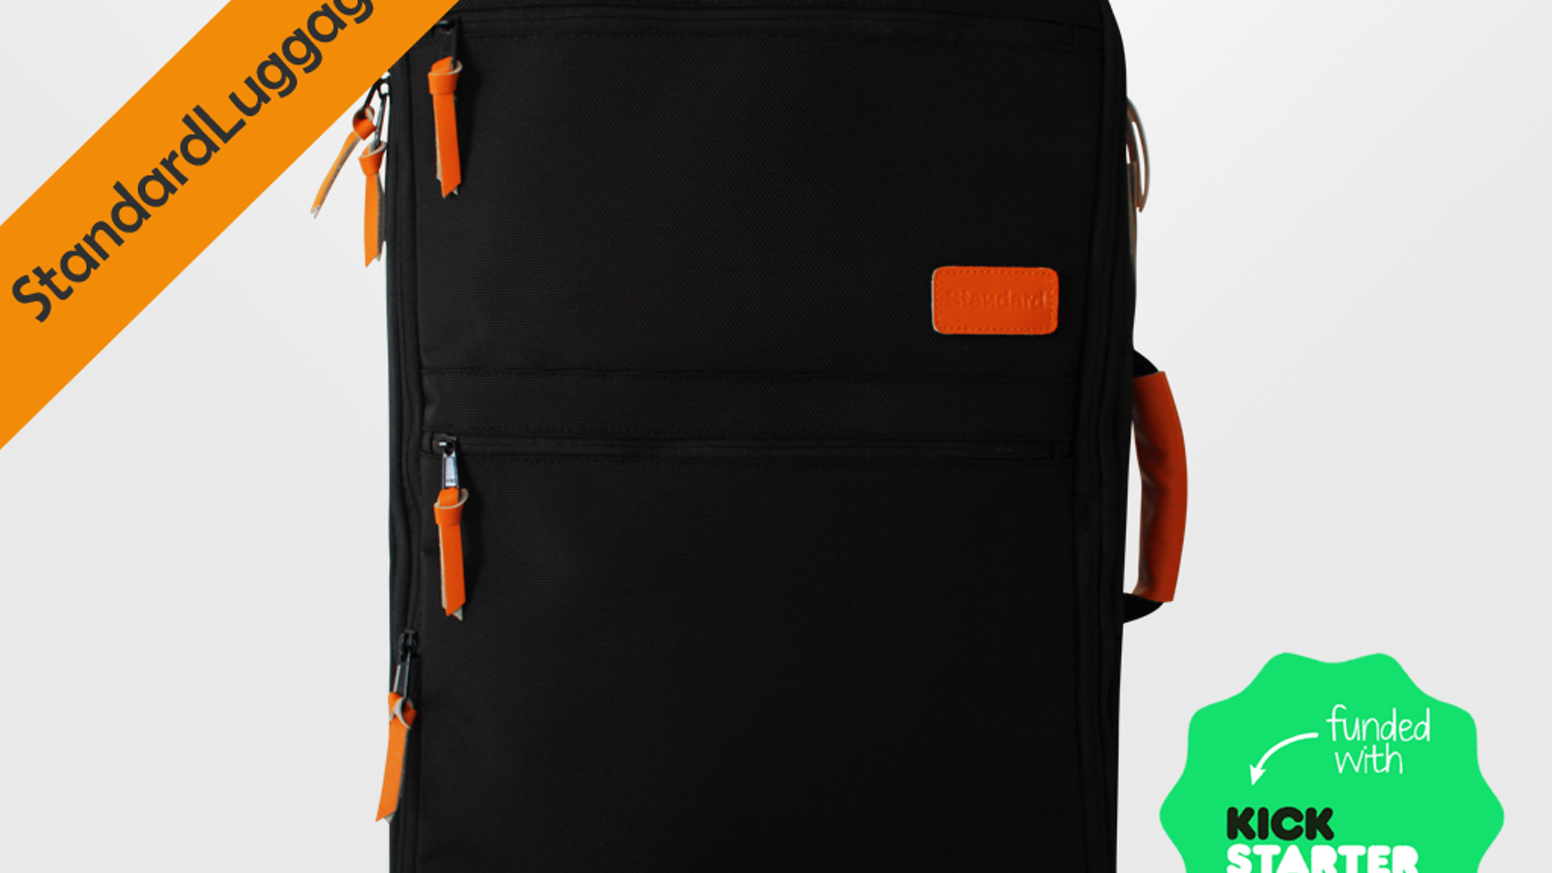 Finally! A bag for today's global traveller: A versatile companion to carry all of your essentials, and keep you happy and productive. Introducing Standard's Carry-on Backpack